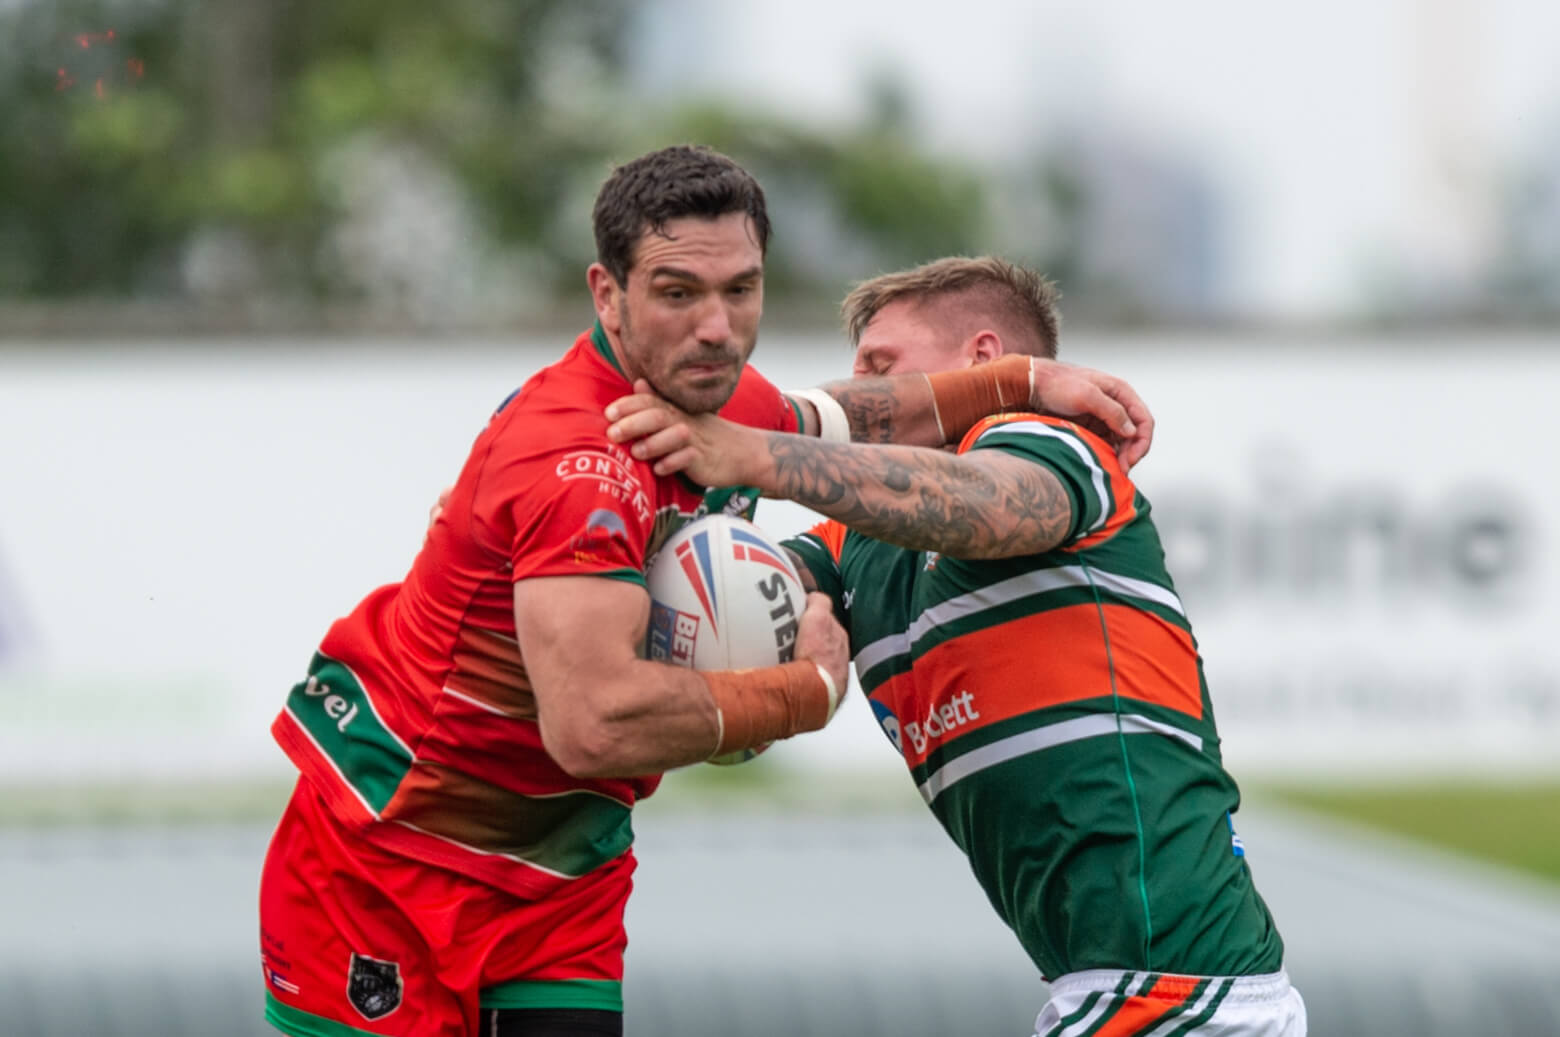 Preview: North Wales Crusaders v London Skolars